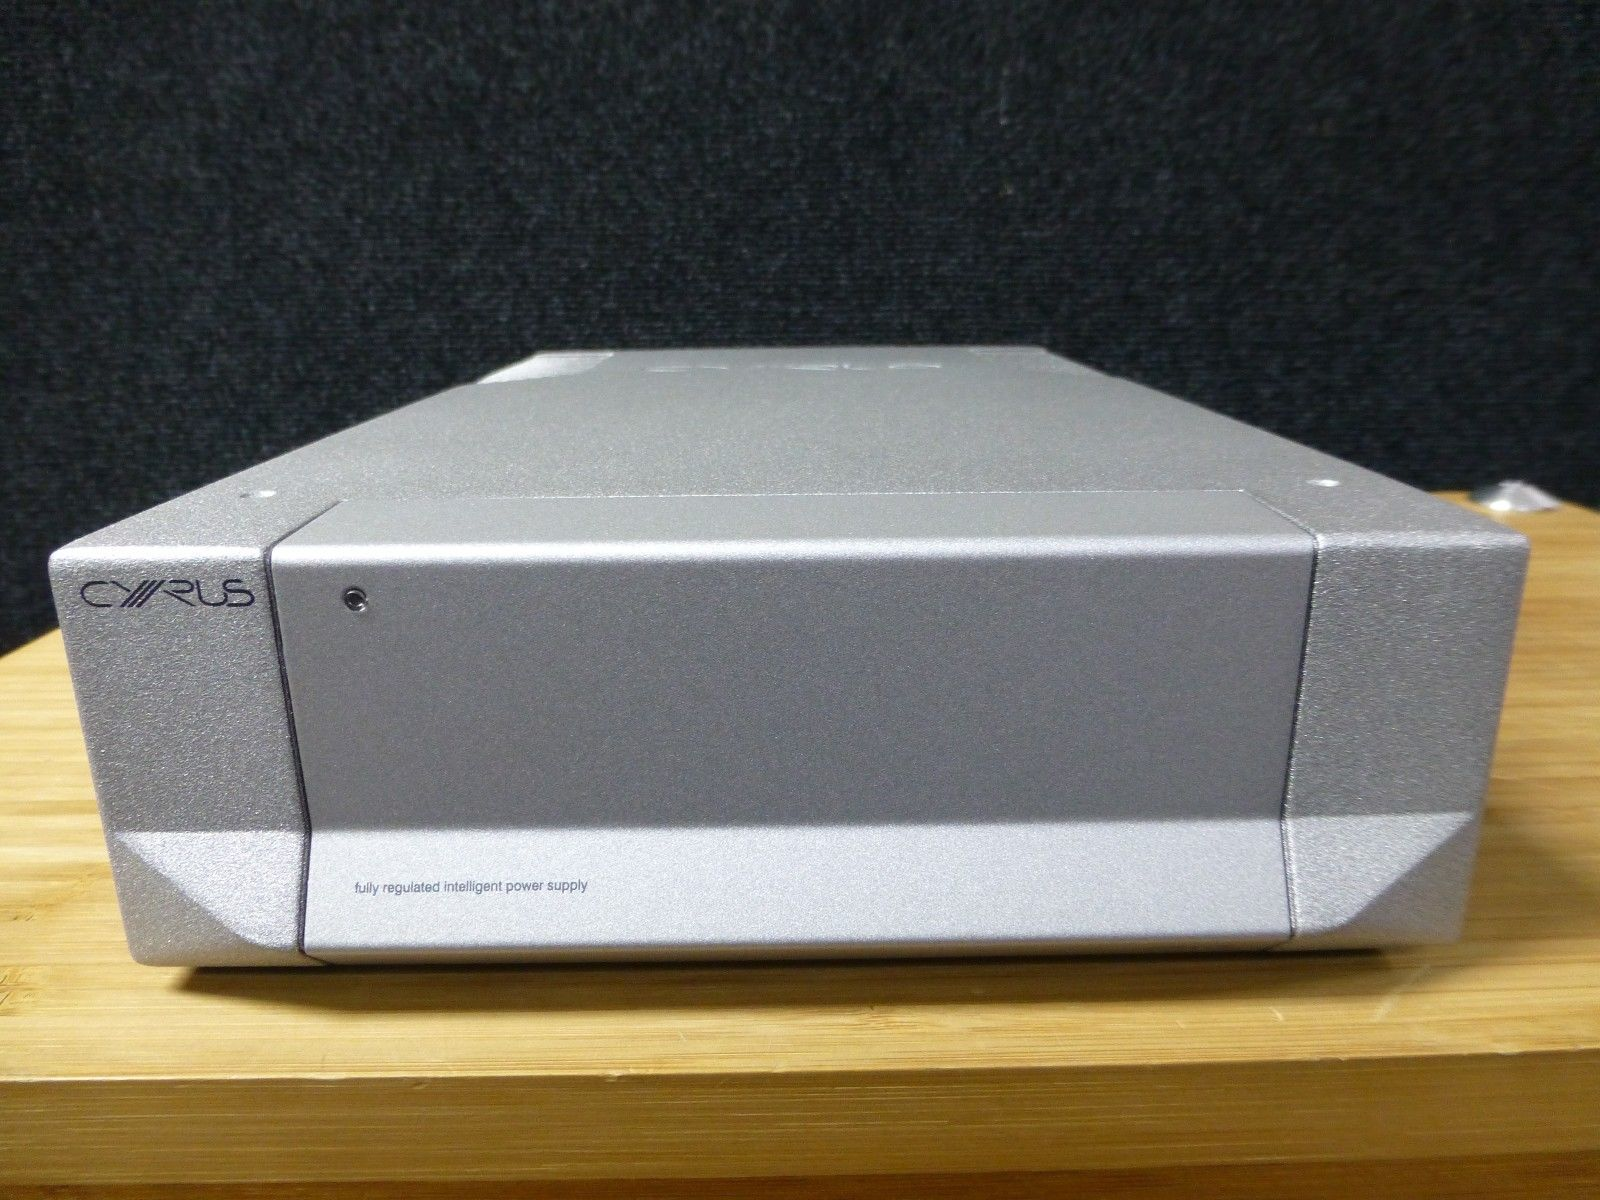 Picture of Cyrus PSX-R2 Power Supply